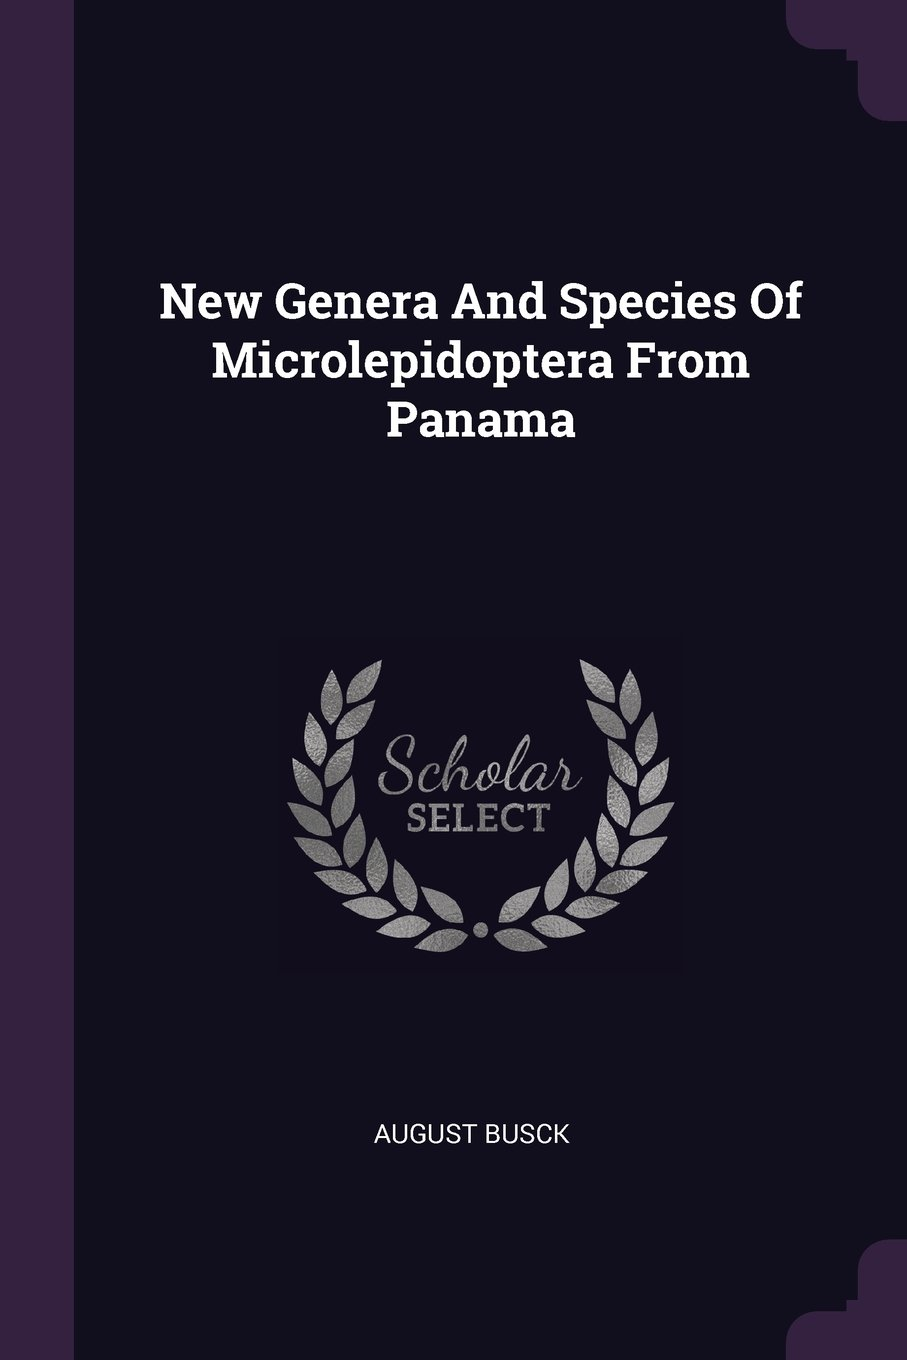 New Genera And Species Of Microlepidoptera From Panama